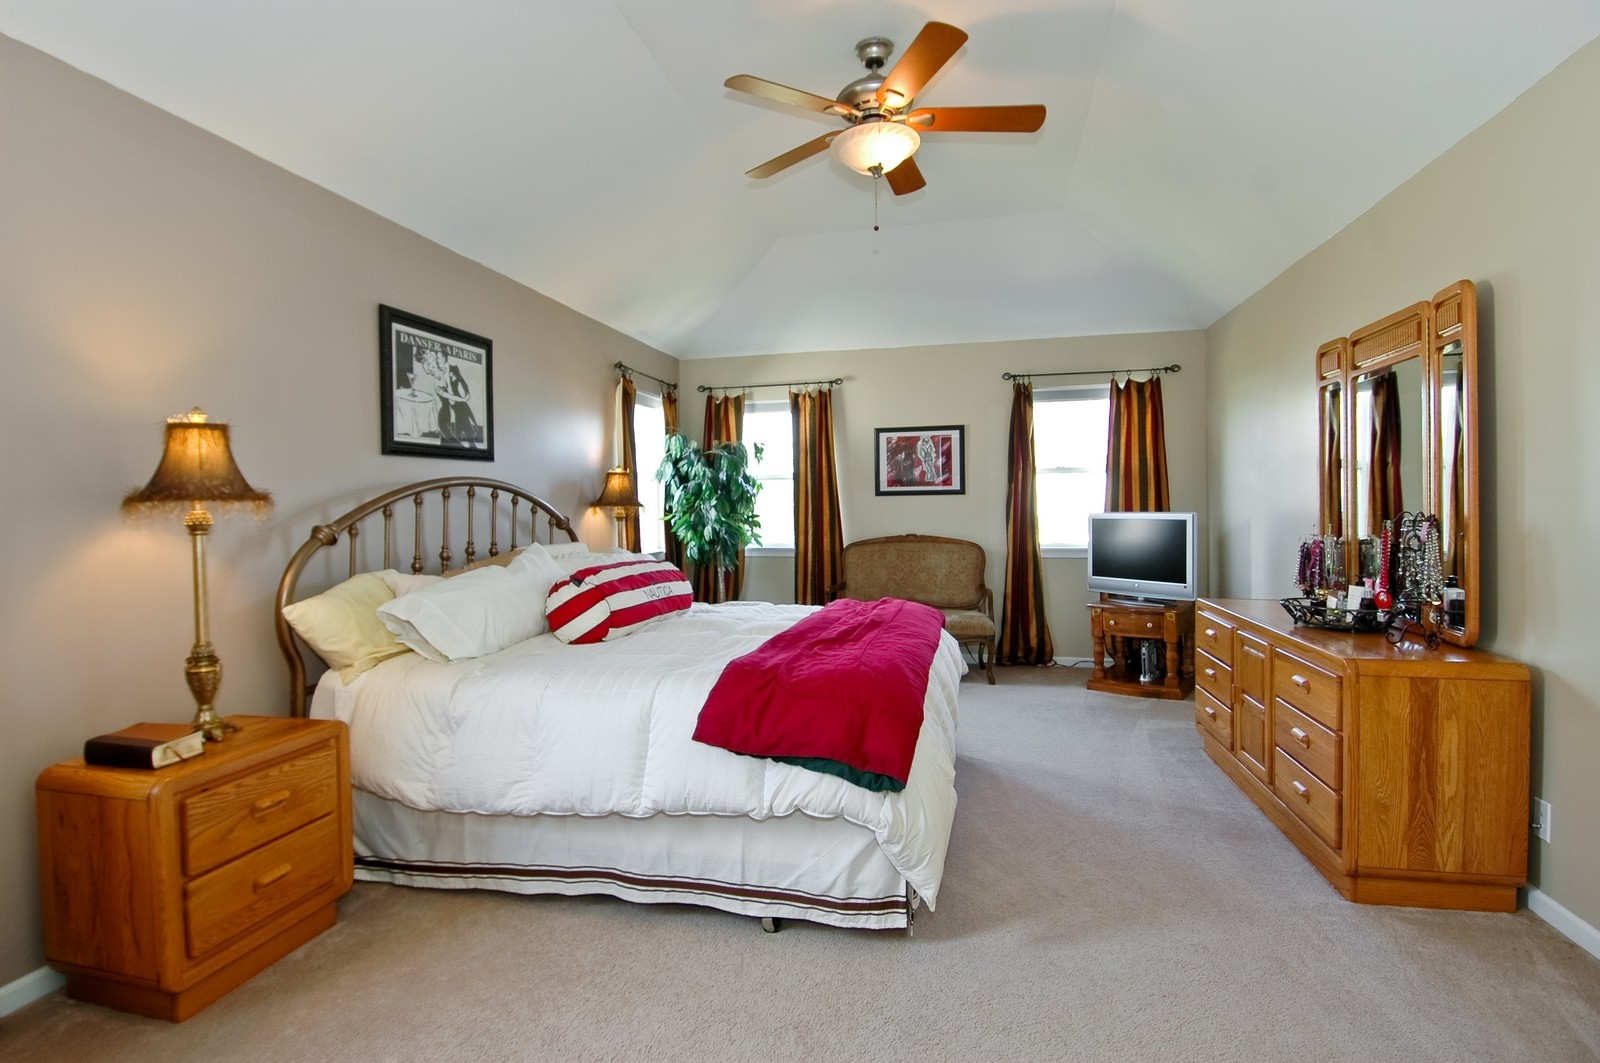 Real Estate Photography - 835 Chasewood Dr, South Elgin, IL, 60177 - Master Bedroom